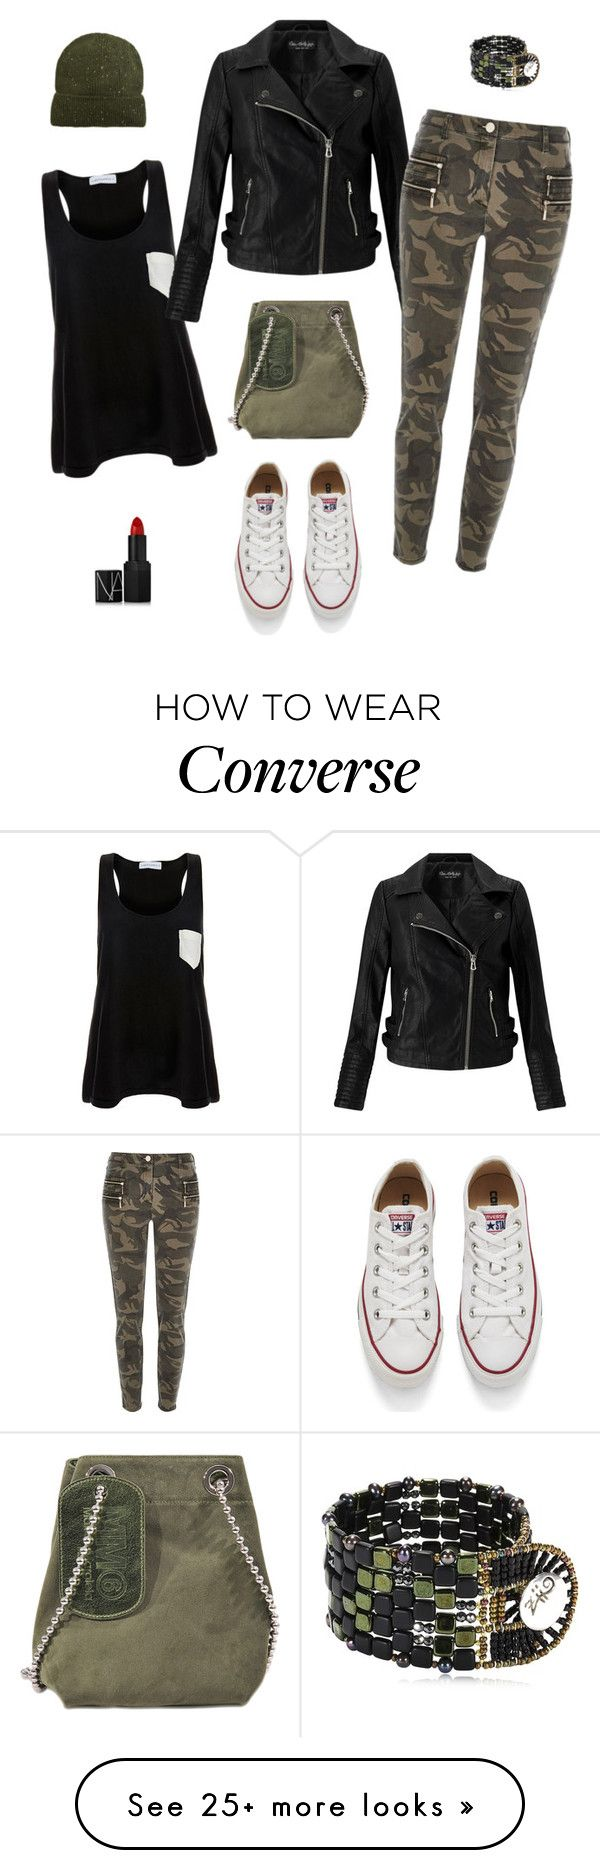 """""""Converse camo"""" by siostranocy on Polyvore featuring Solid & Striped, Miss Selfridge, River Island, Converse, Maison Margiela, MANGO, Ziio and NARS Cosmetics"""